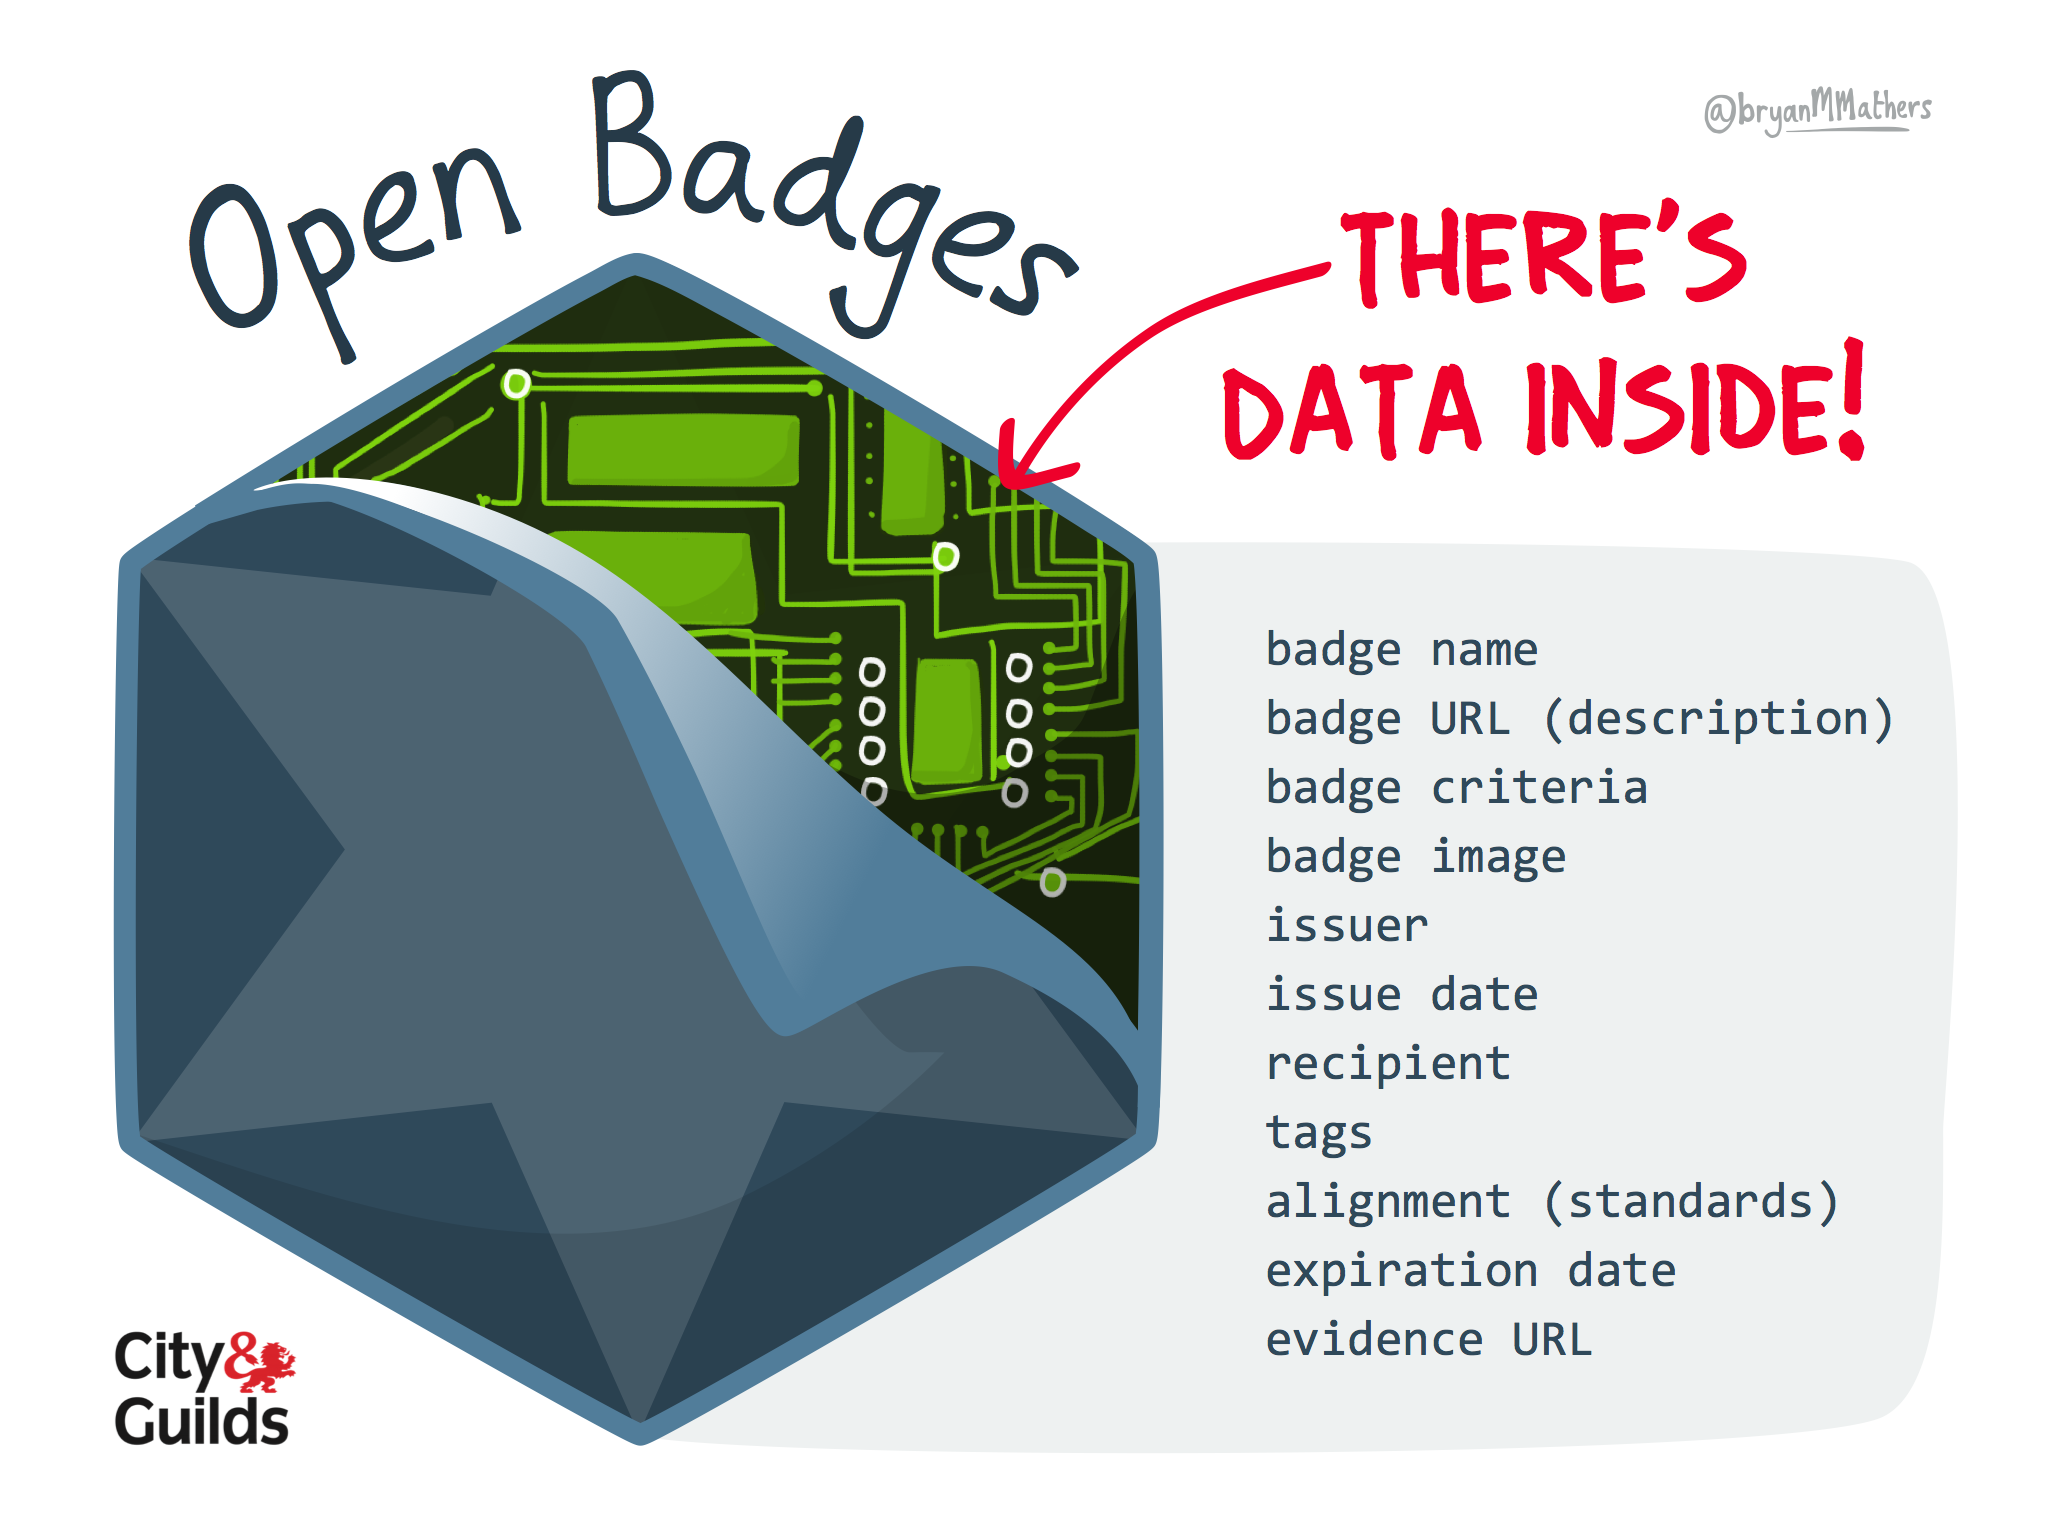 image openbadge.png (0.5MB)